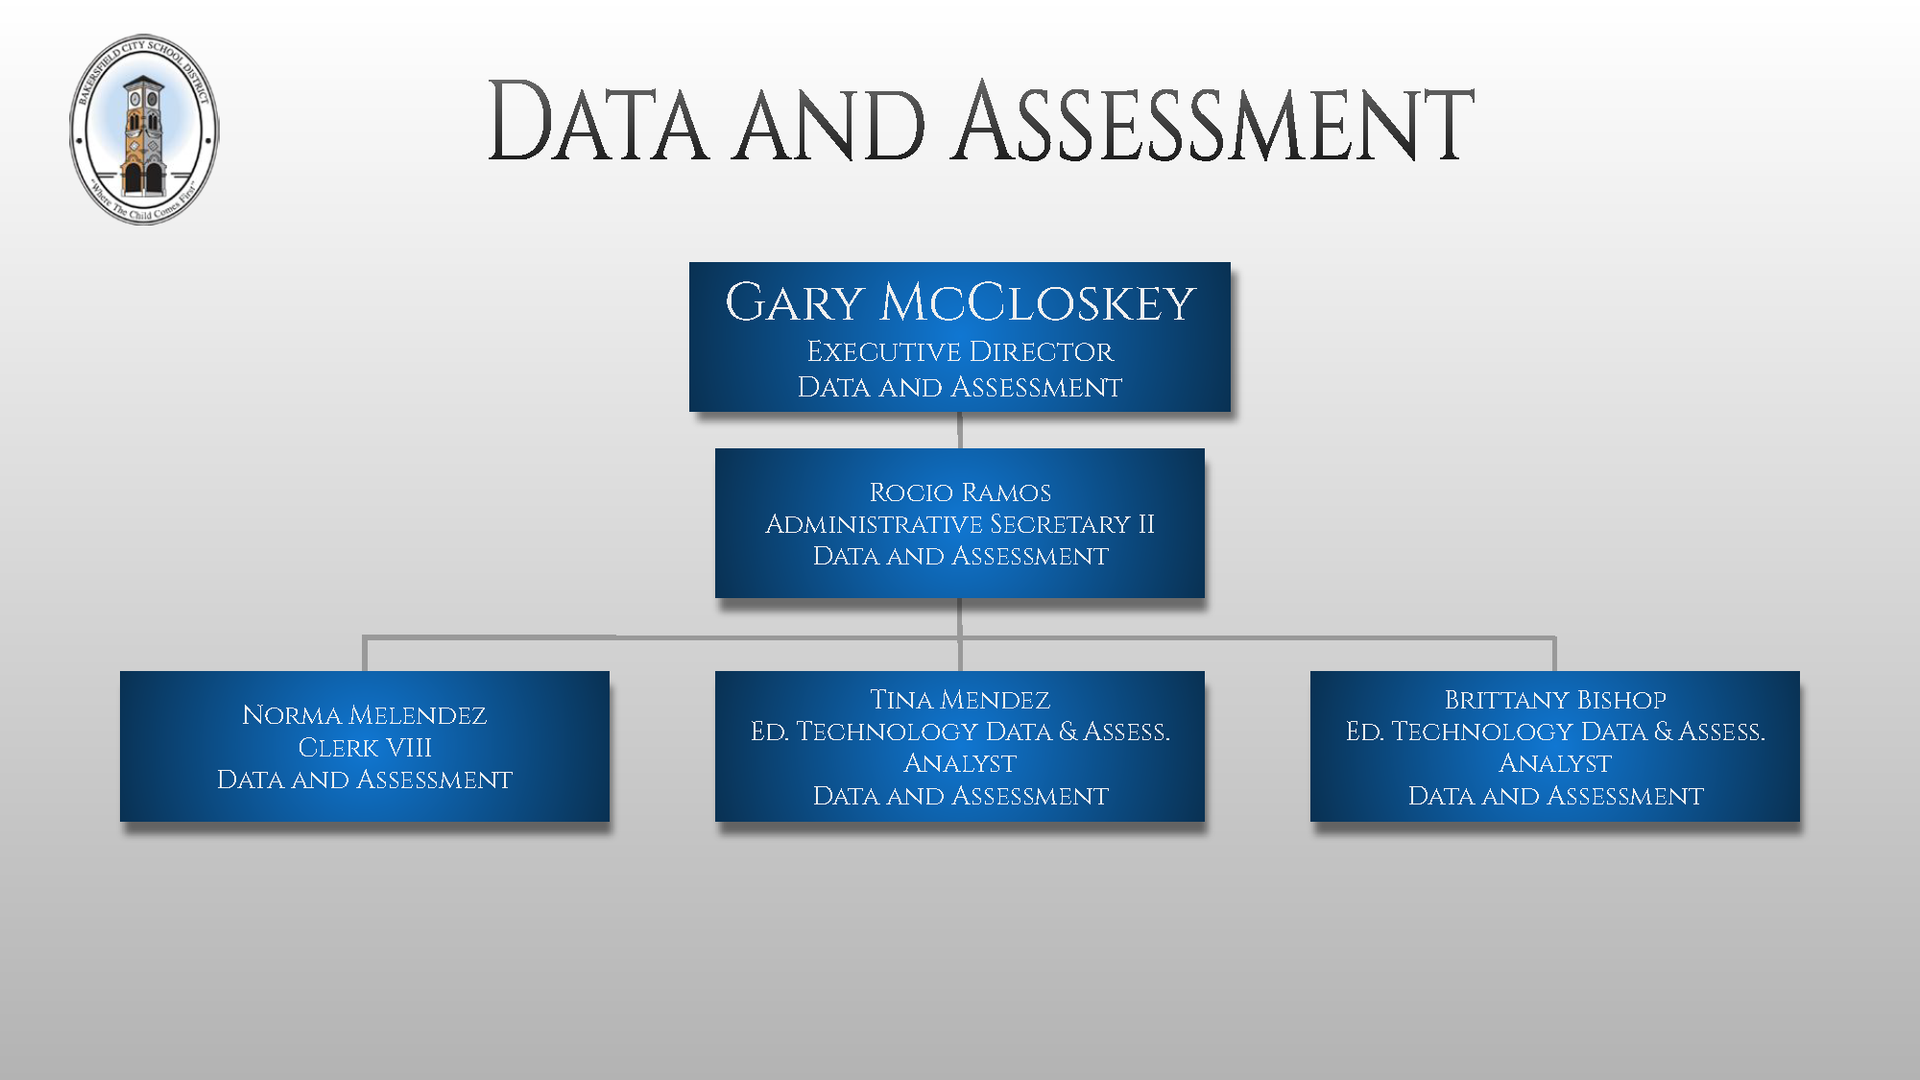 Ed Tech Data and Assessments